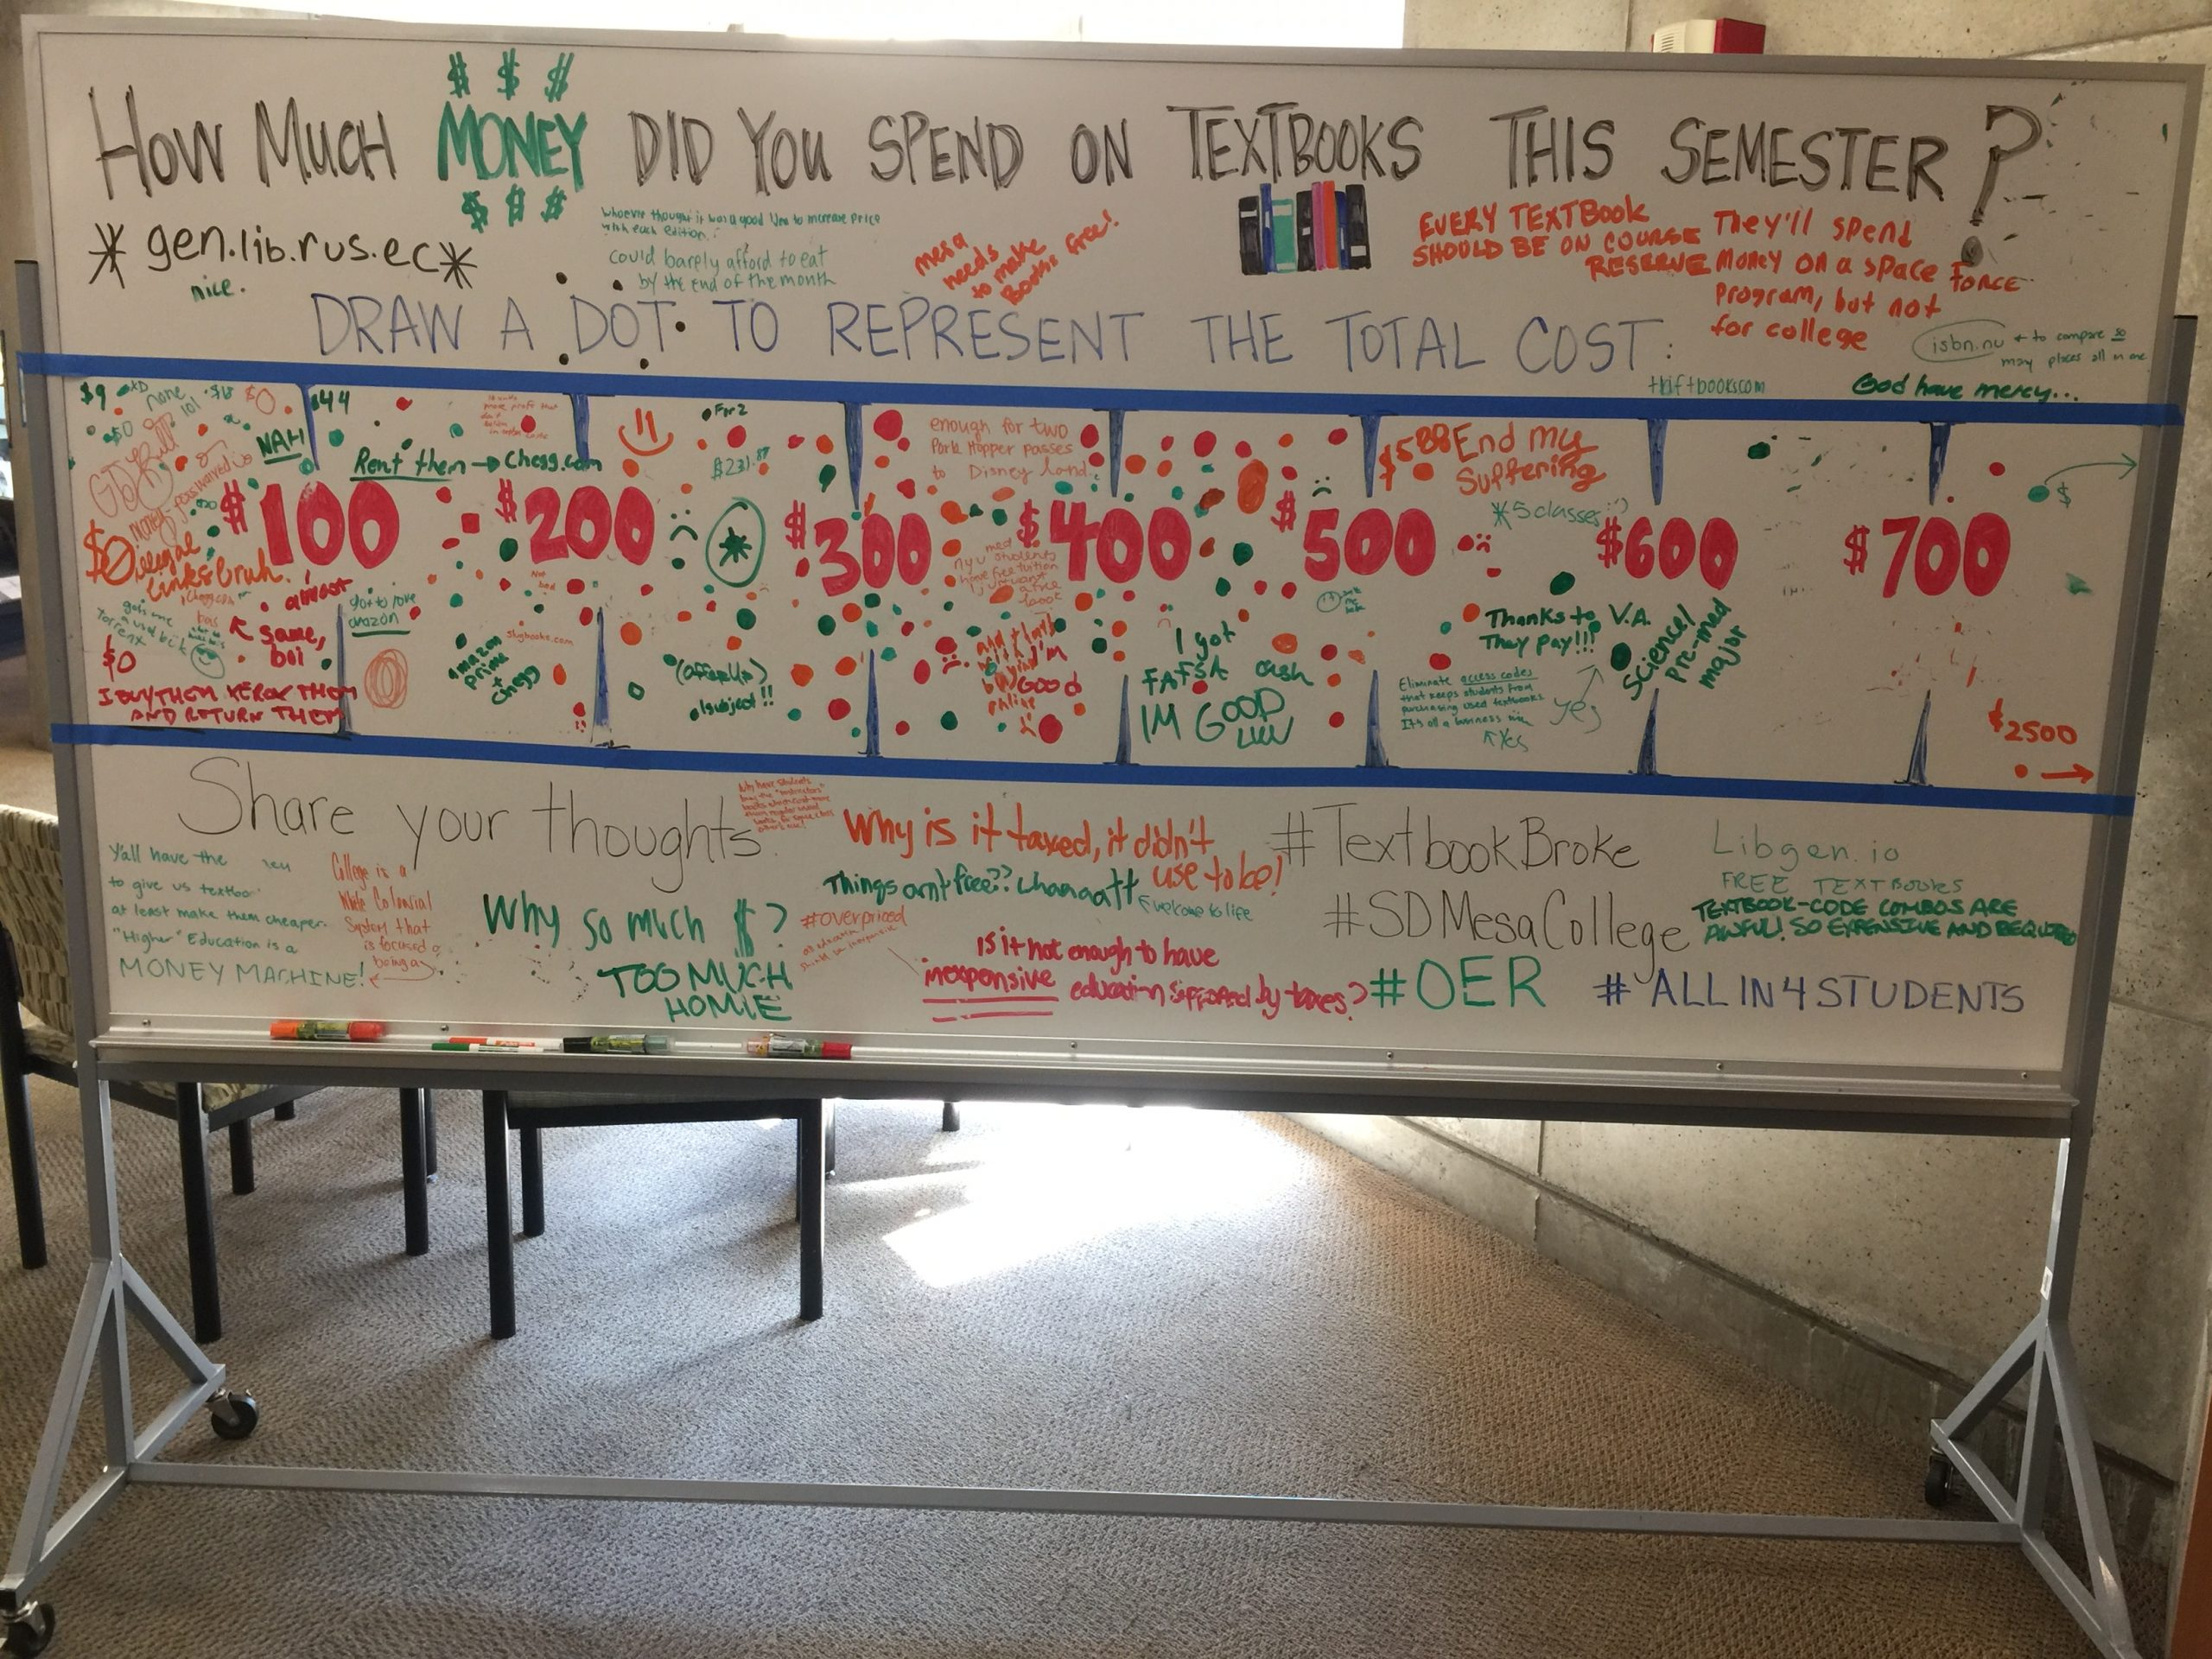 A colorful whiteboard where students have indicated how much they spent on texts - and their thoughts about it.